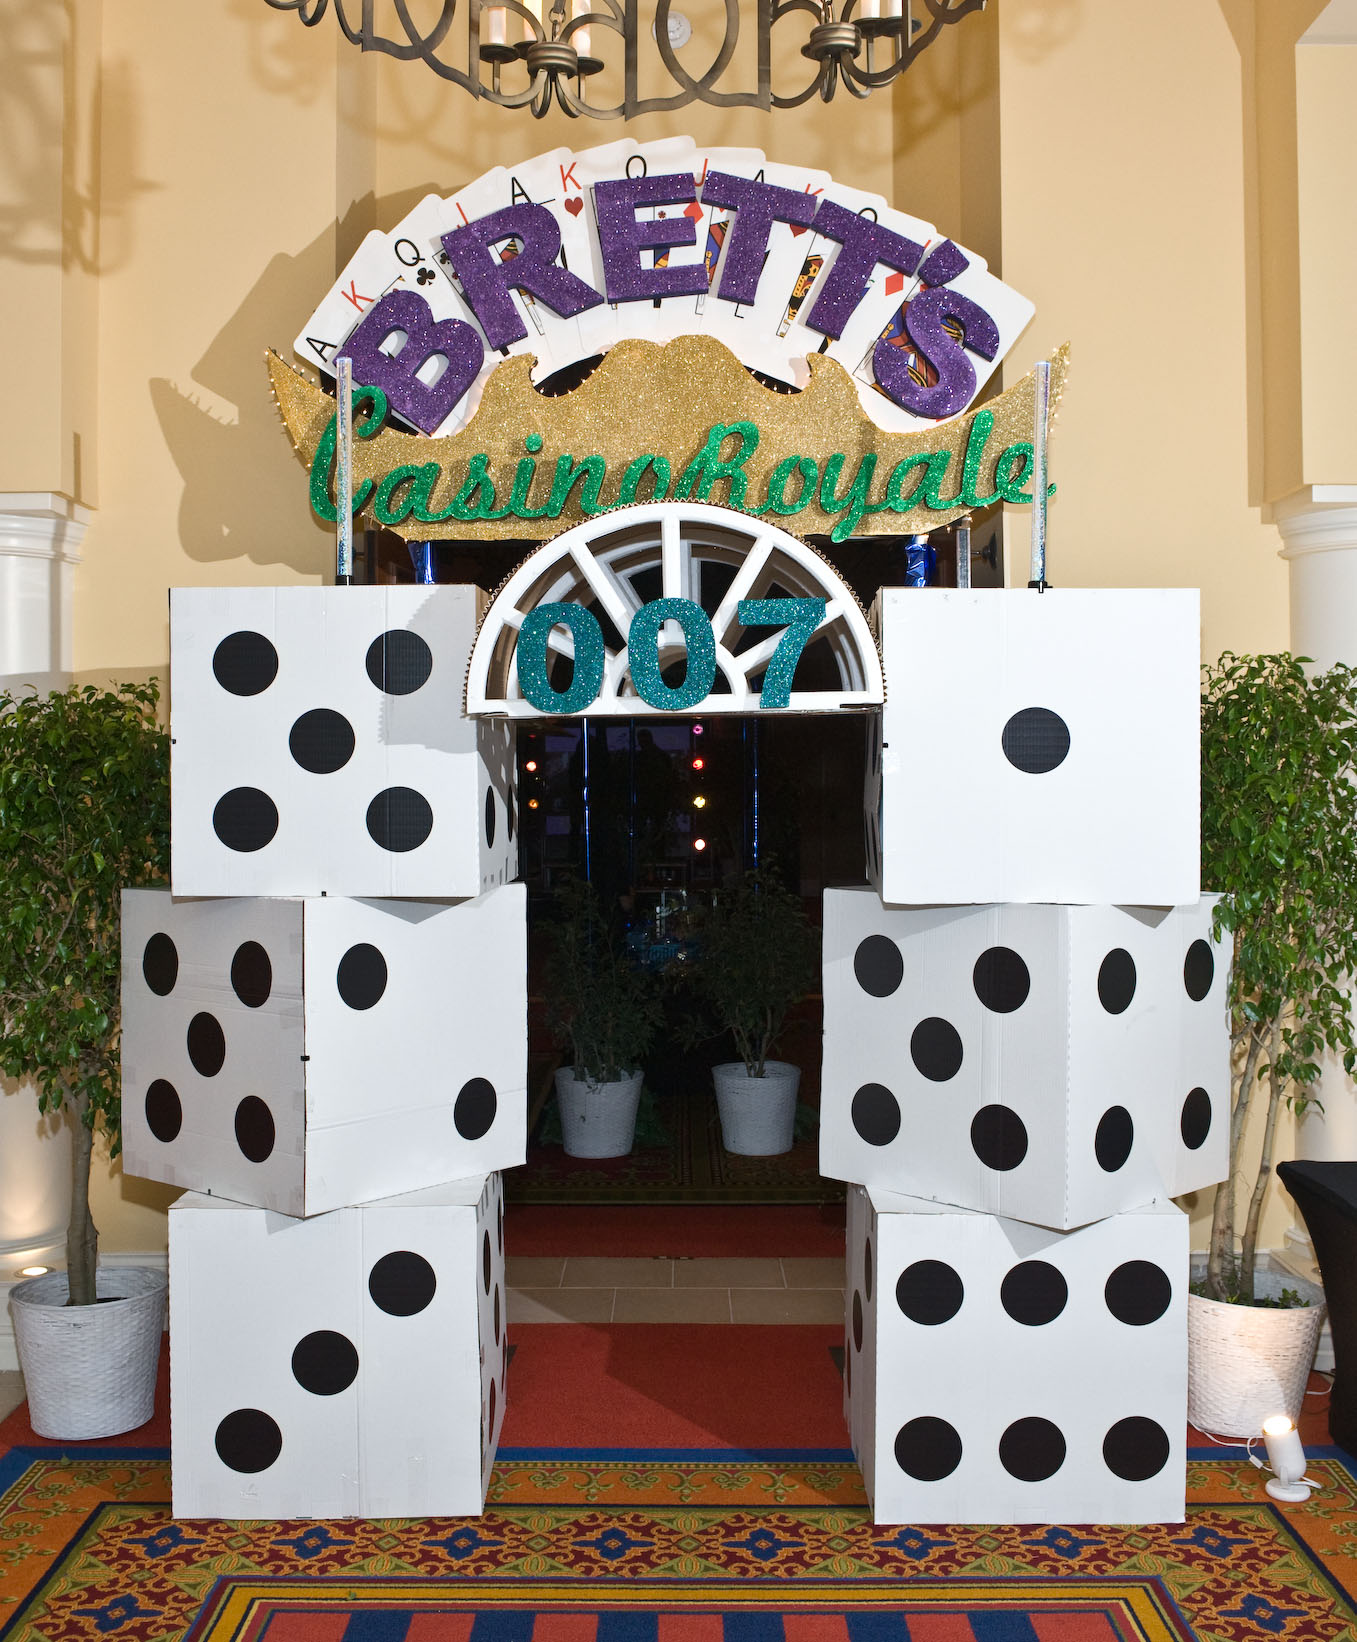 cardboard dice casino party entrance decor : casino decorations ideas - www.pureclipart.com